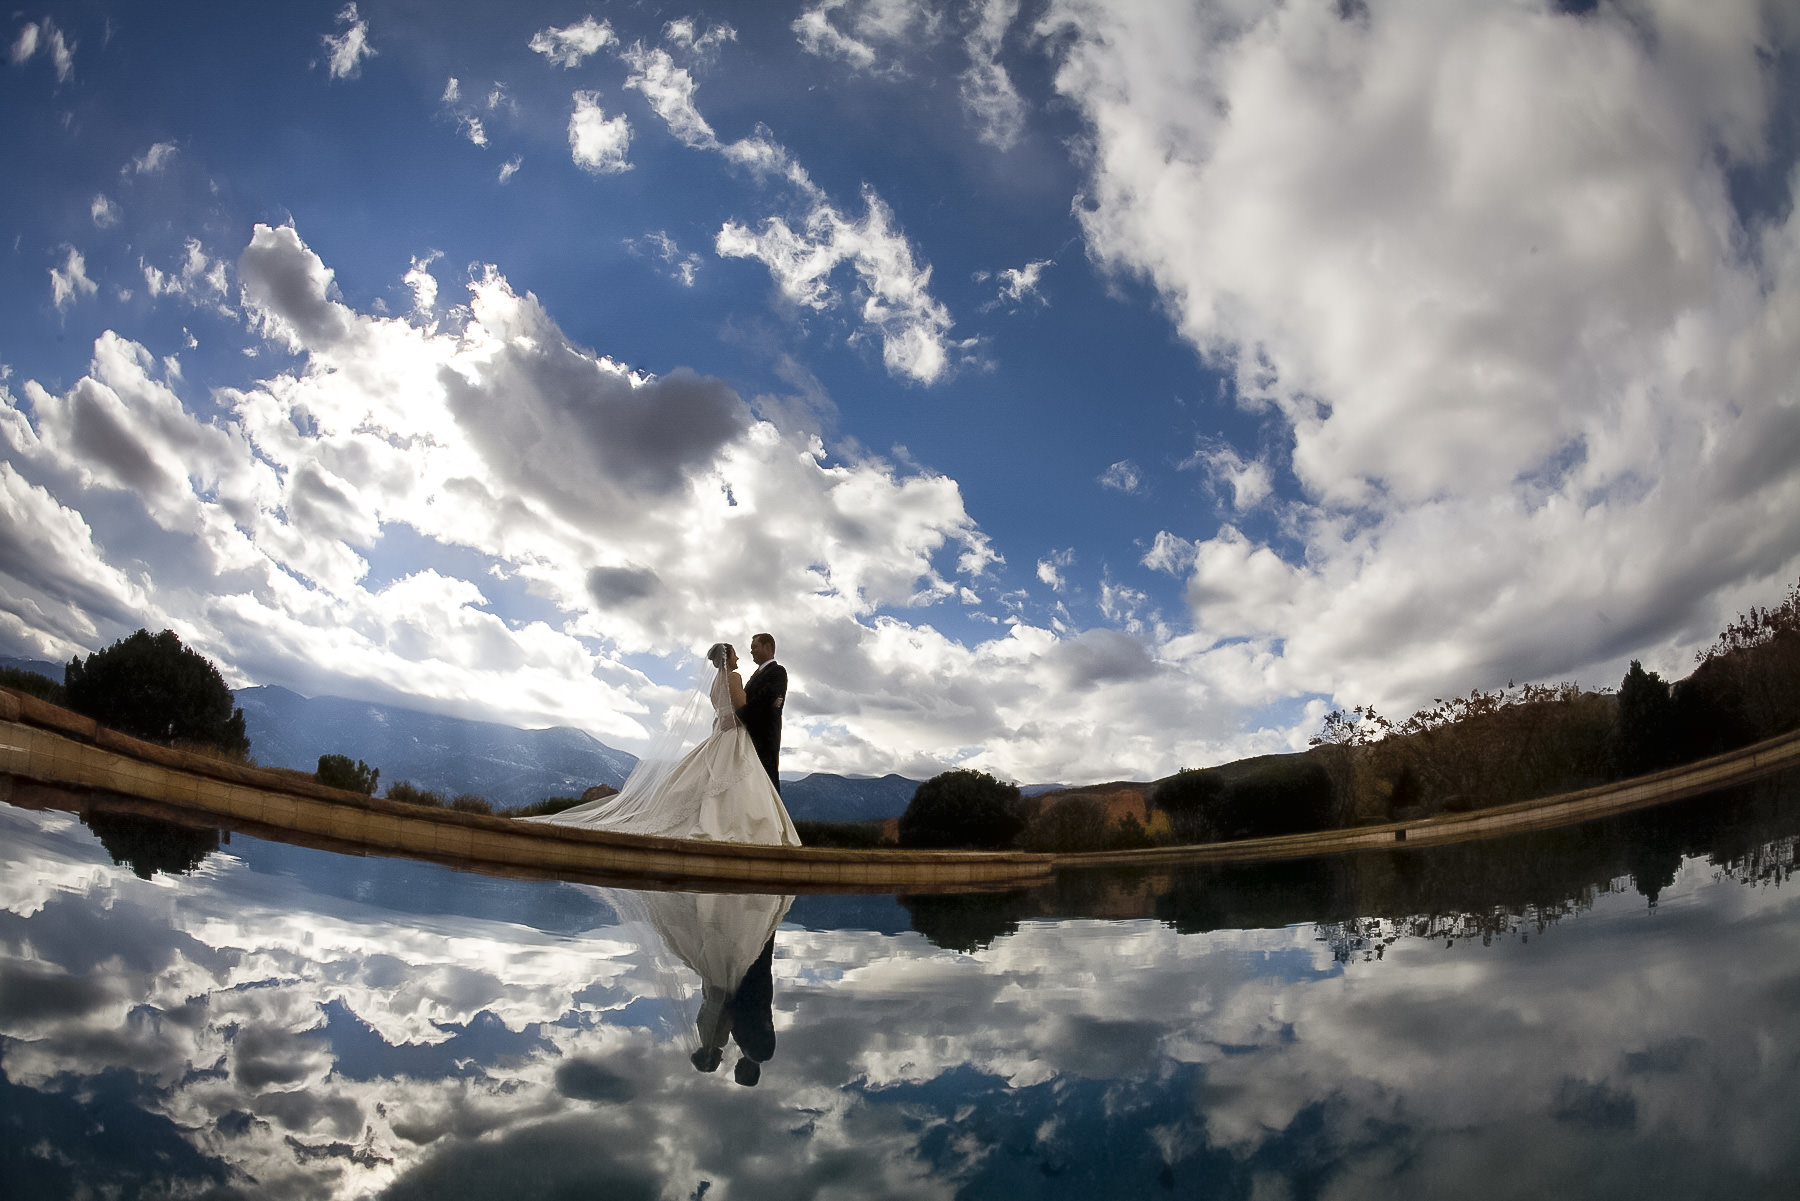 Bride and groom together in front of reflection pool with blue sky and clouds.